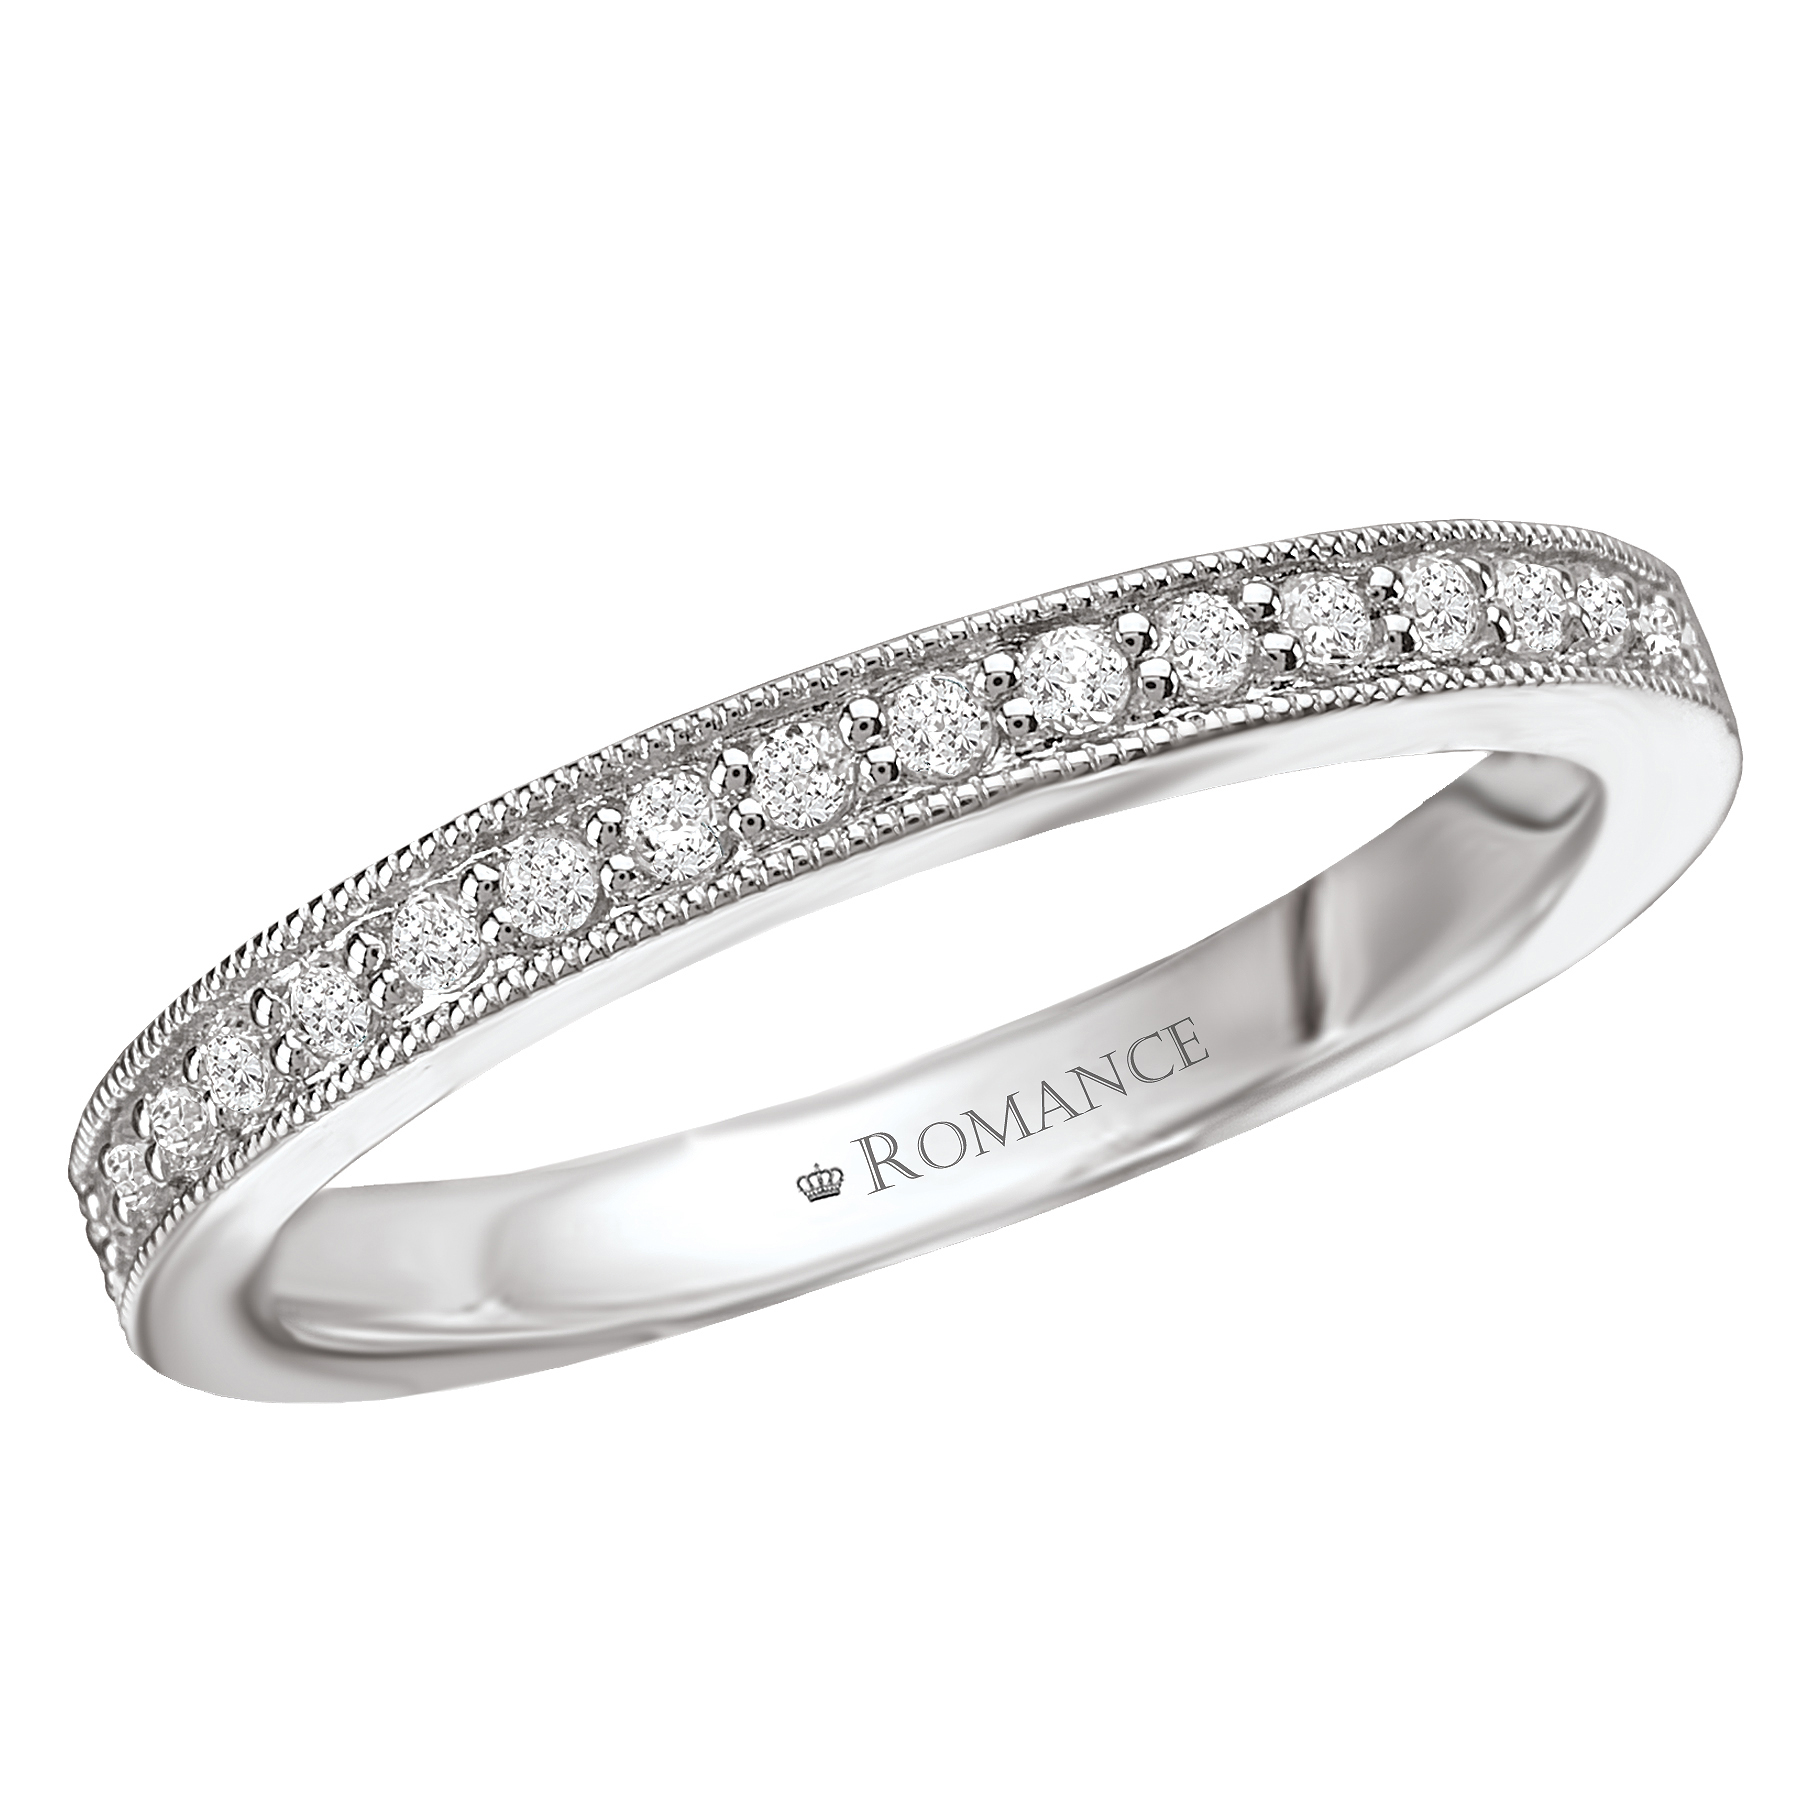 Romance Wedding Bands 117524-W product image